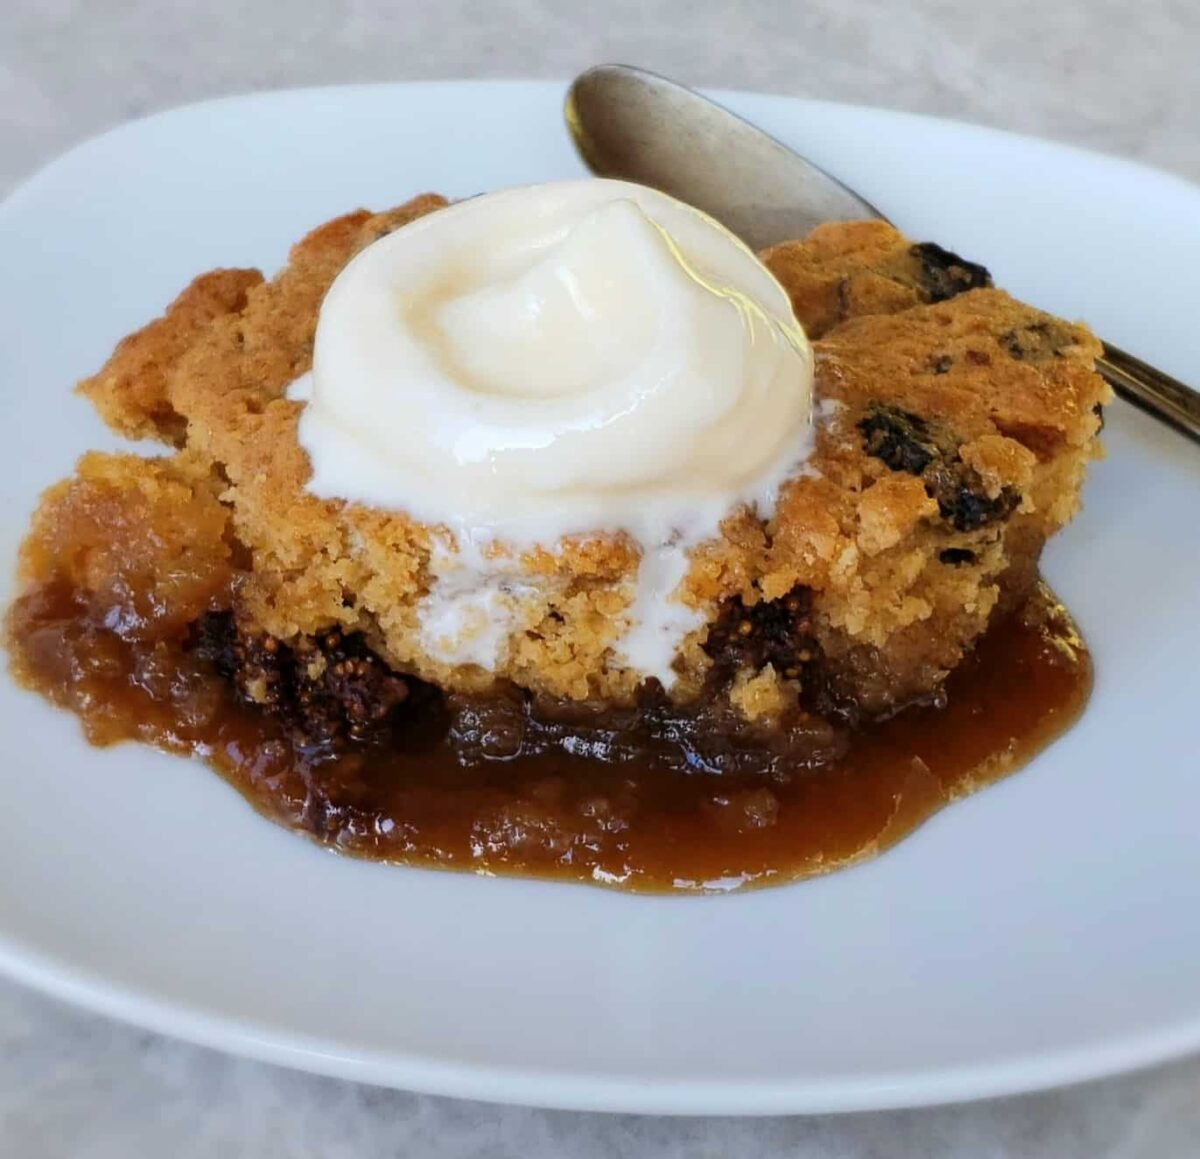 Mission fig cake with sauce scooped onto a white plate with ice cream